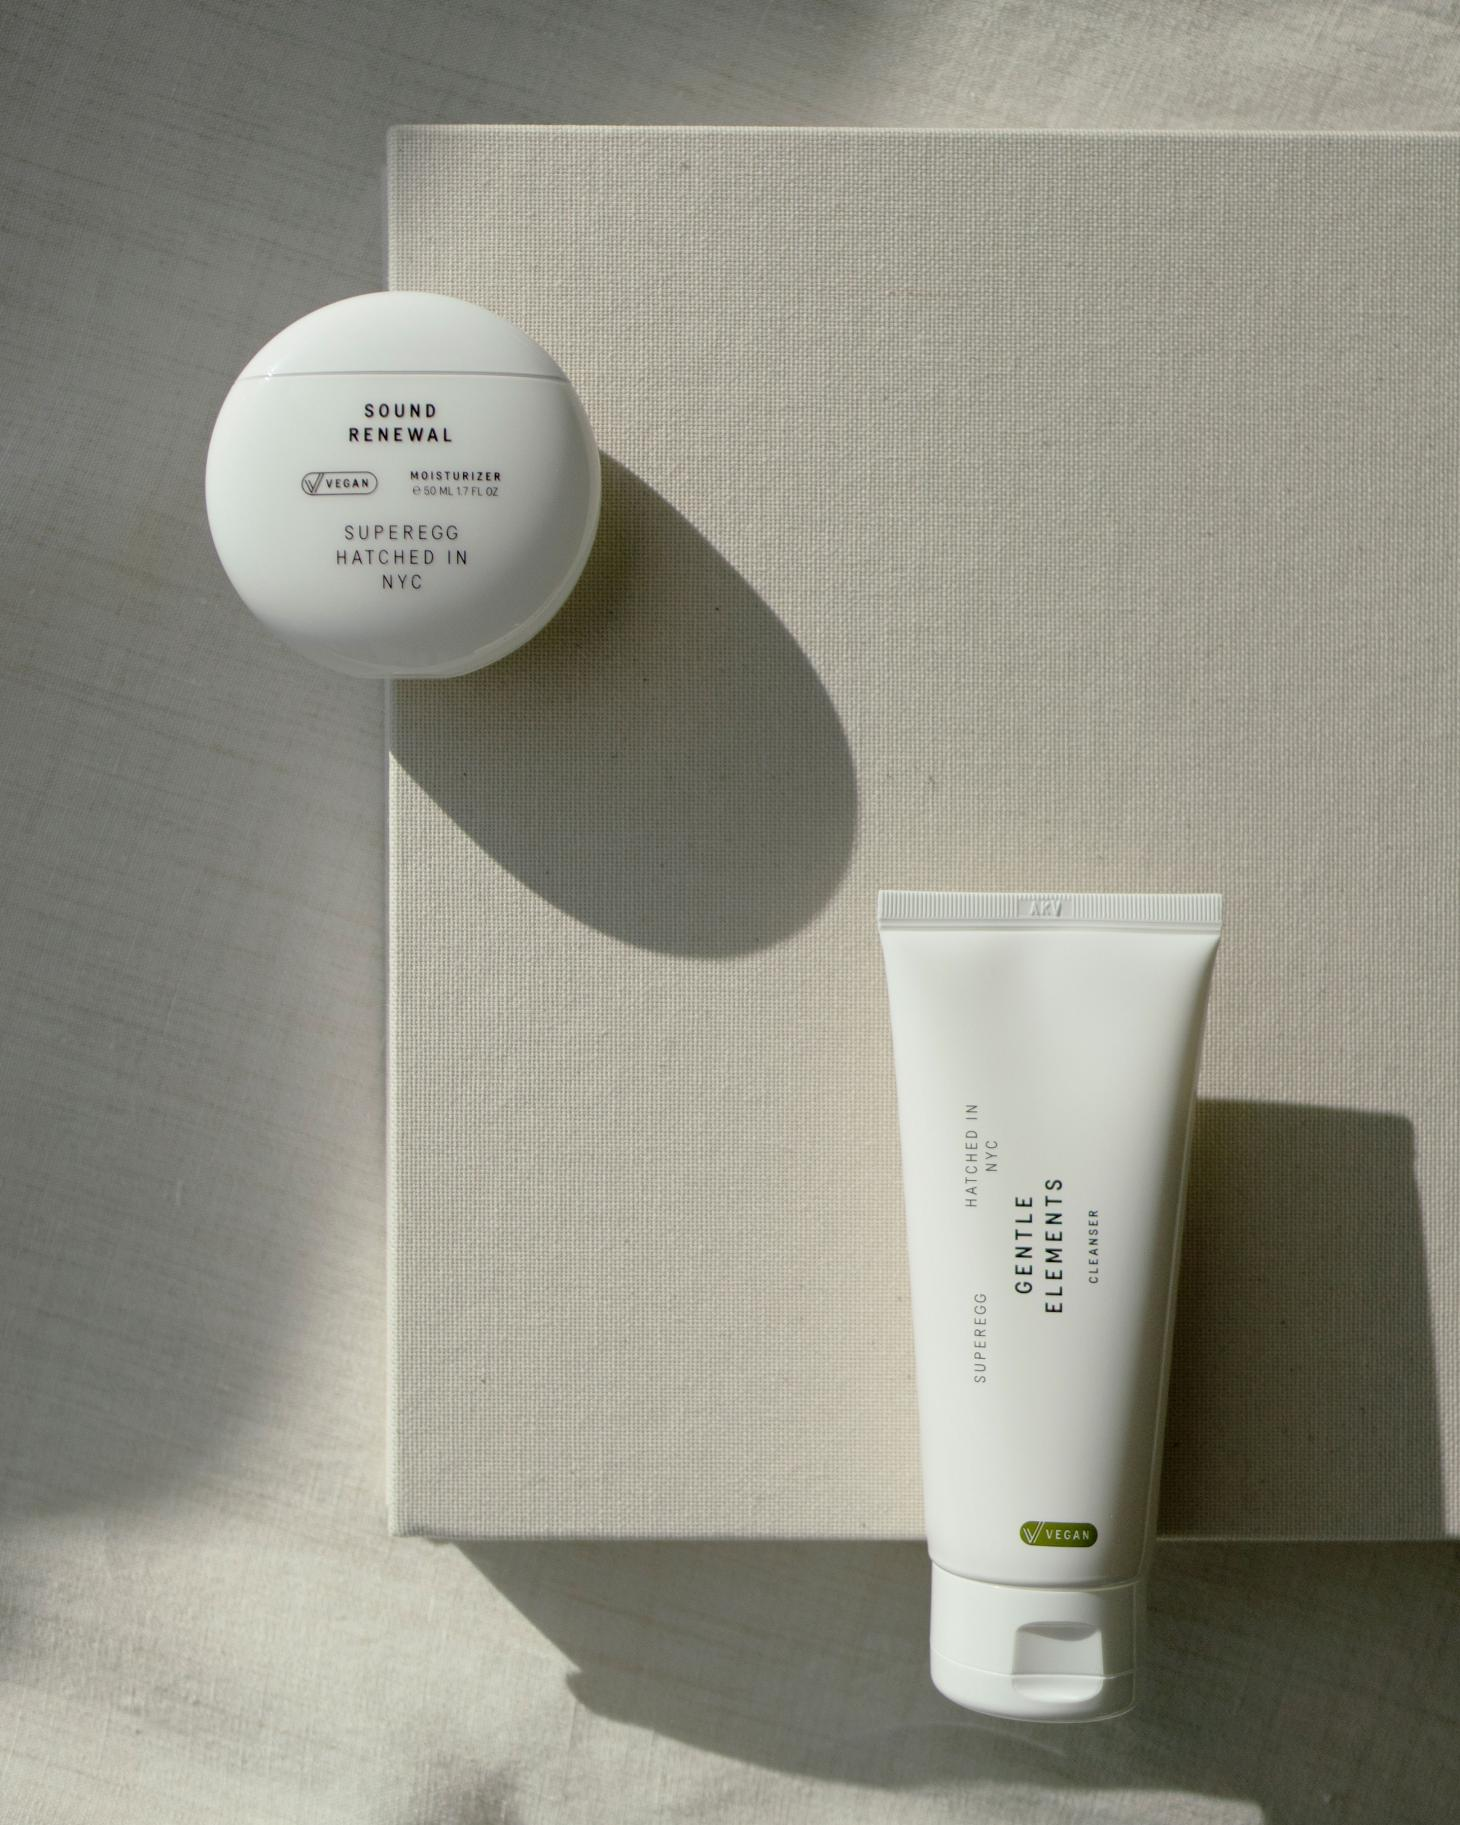 superegg vegan skincare moisturiser and cleanser in white bottles against white background